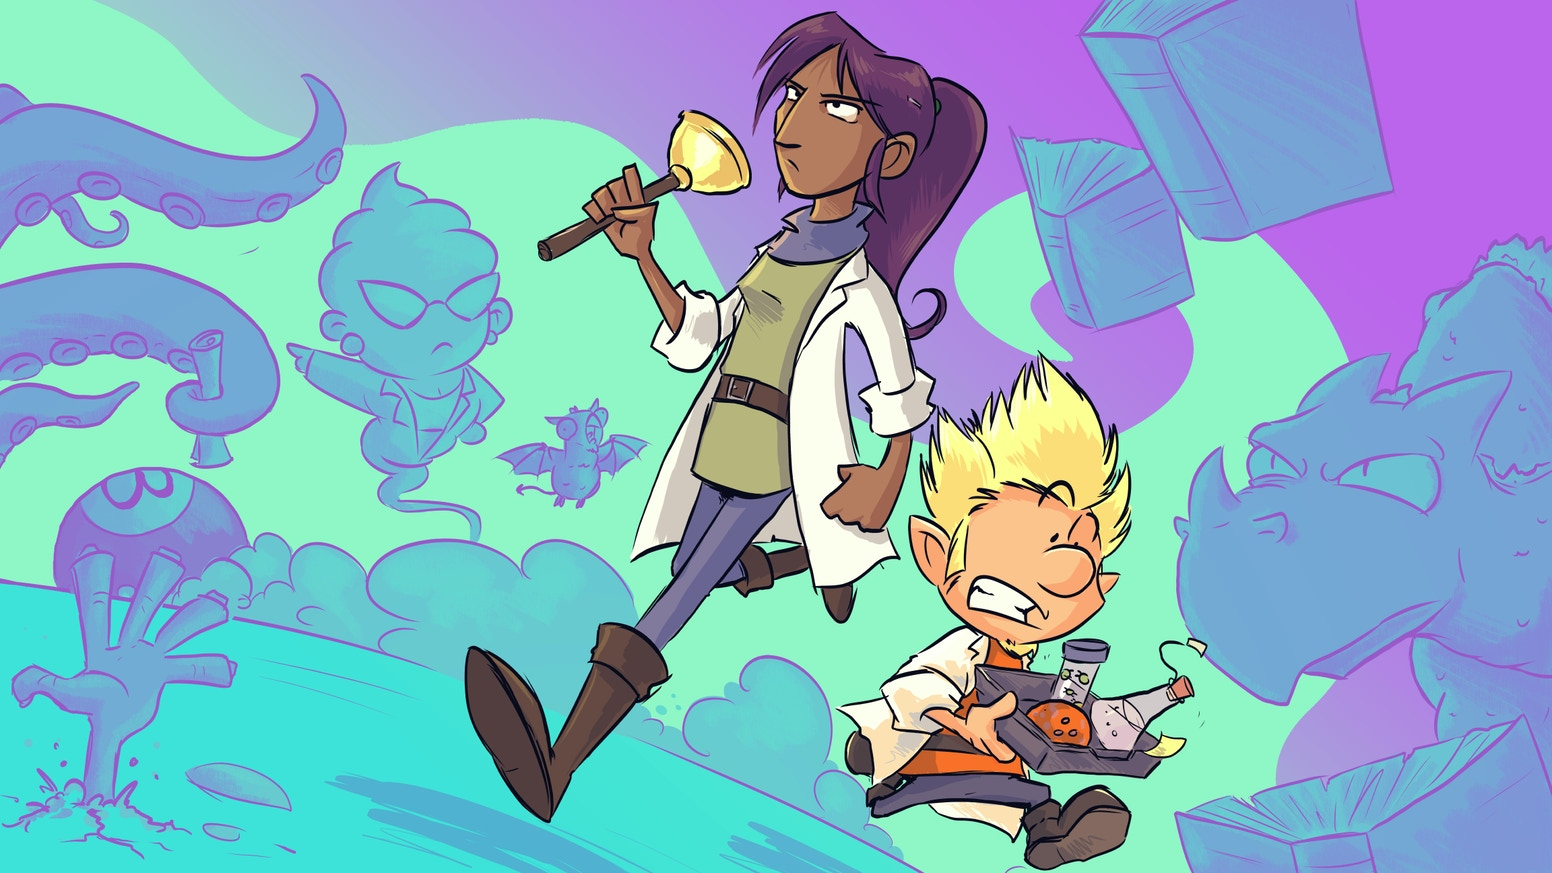 An inclusive fantasy comic about the fun misadventures of two technicians at a school for young knights & mages -with a dash of romance. Solidarity with the employees of kickstarter and their efforts to unionise.